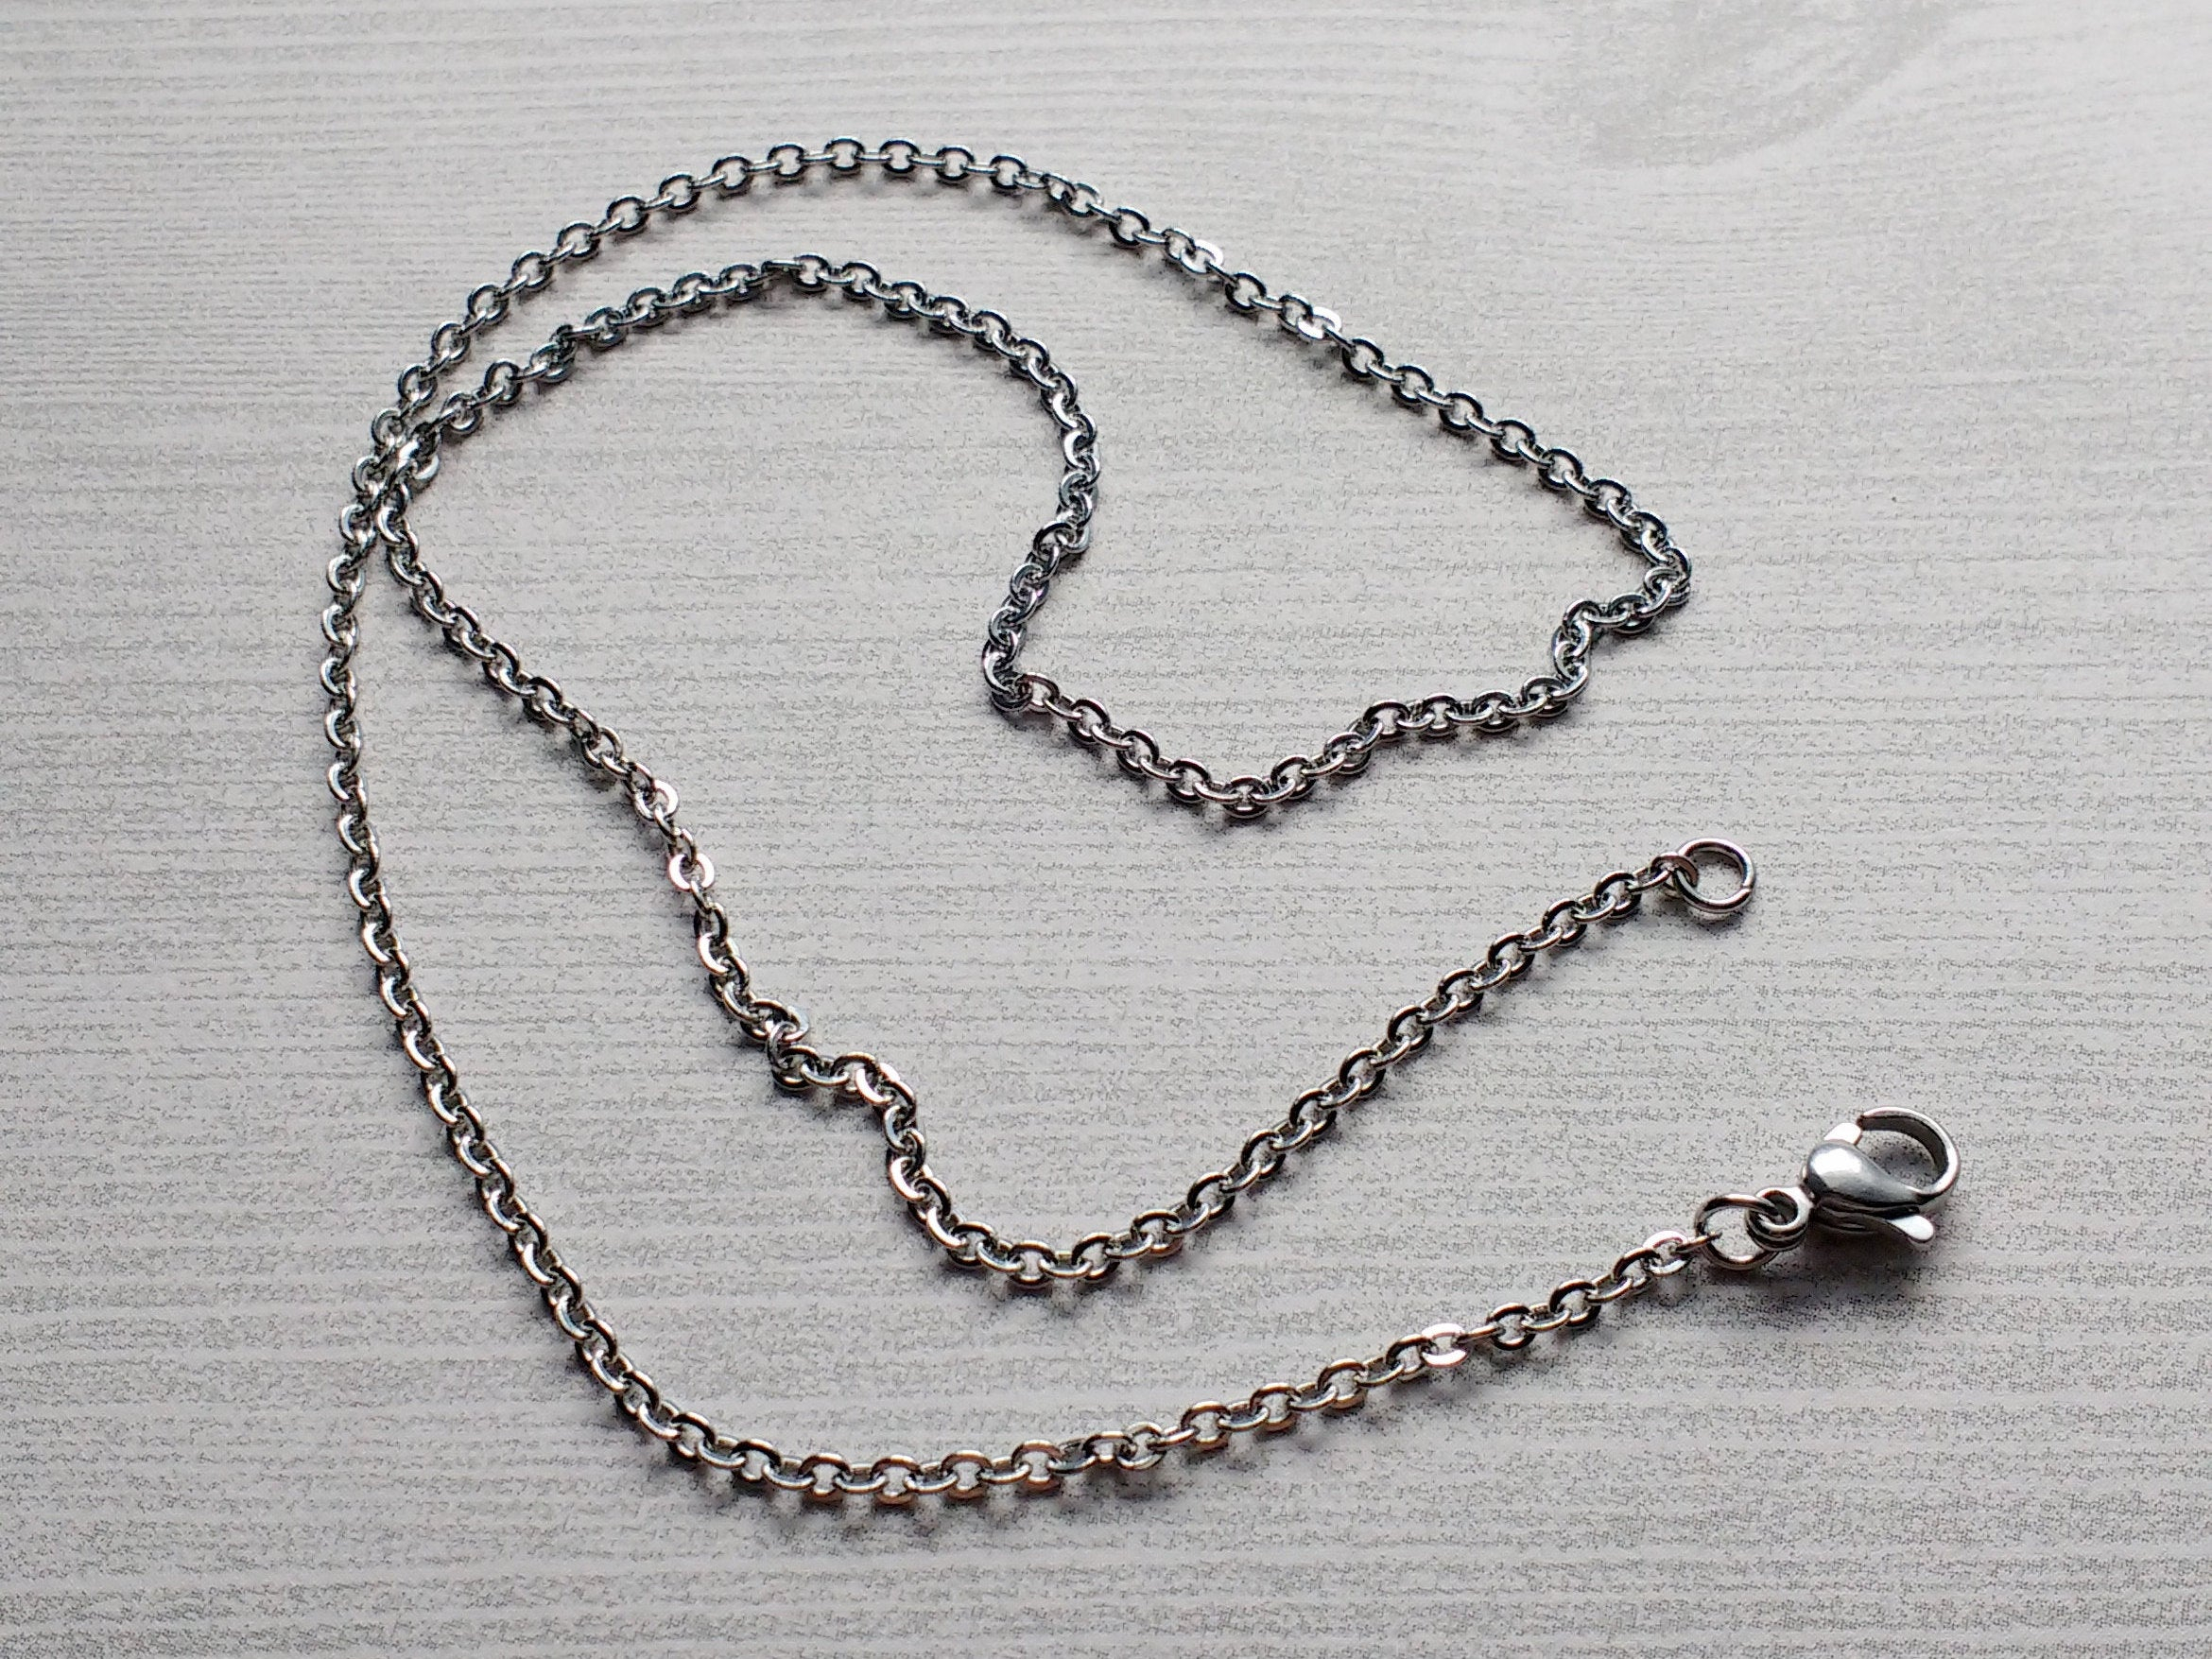 10 Cable Chain Necklaces  (View 1 of 25)